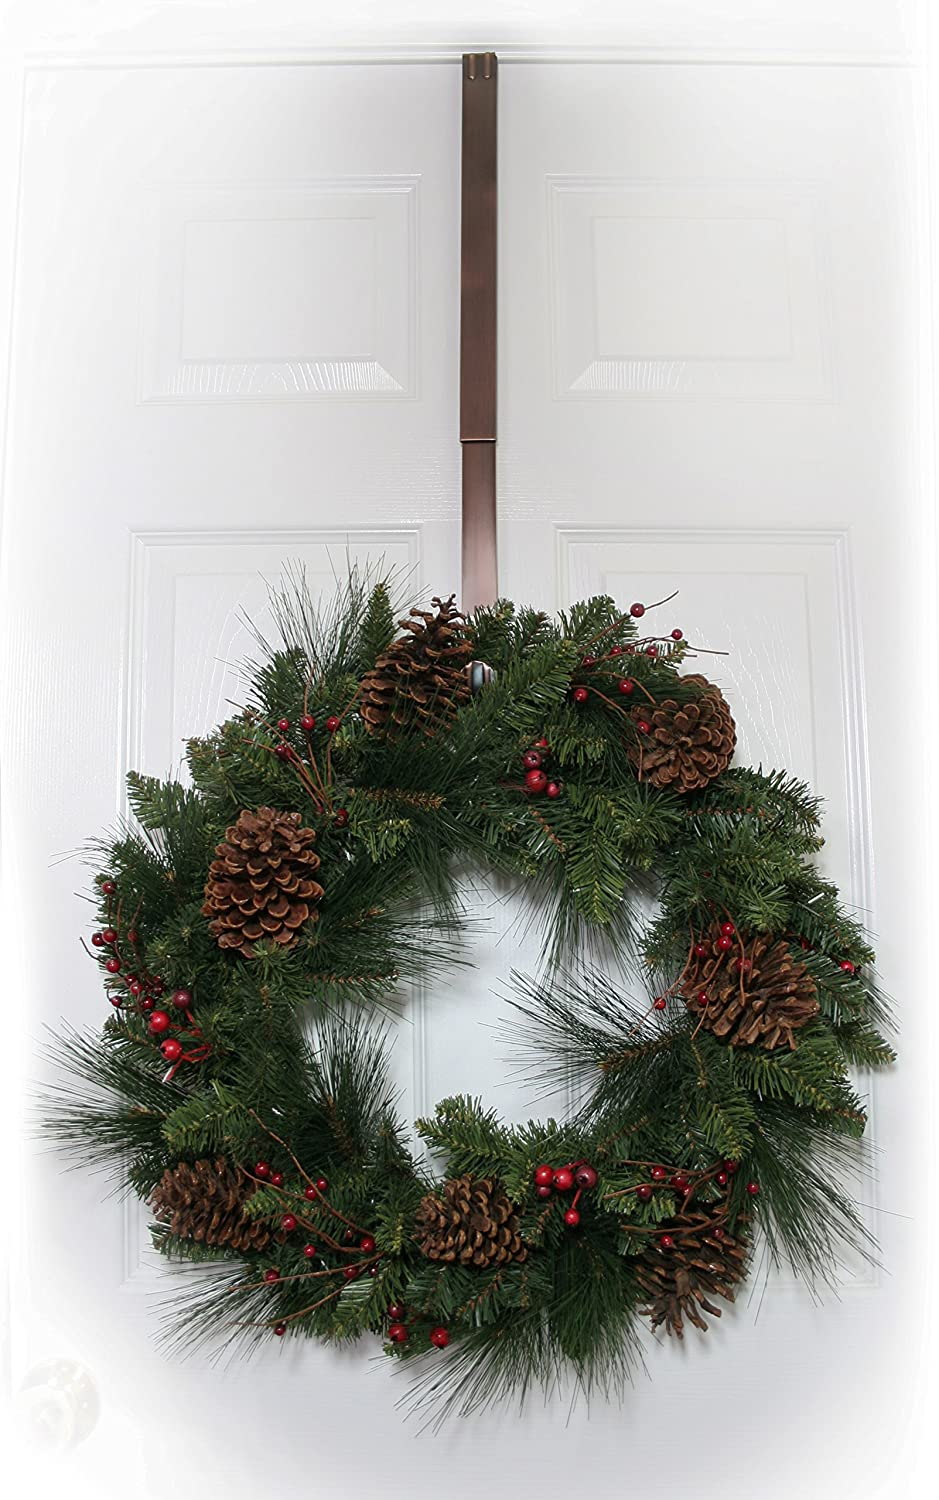 Beau Amazon.com: Haute Decor Adjustable Length Wreath Hanger, 20 Lb: Home  Improvement